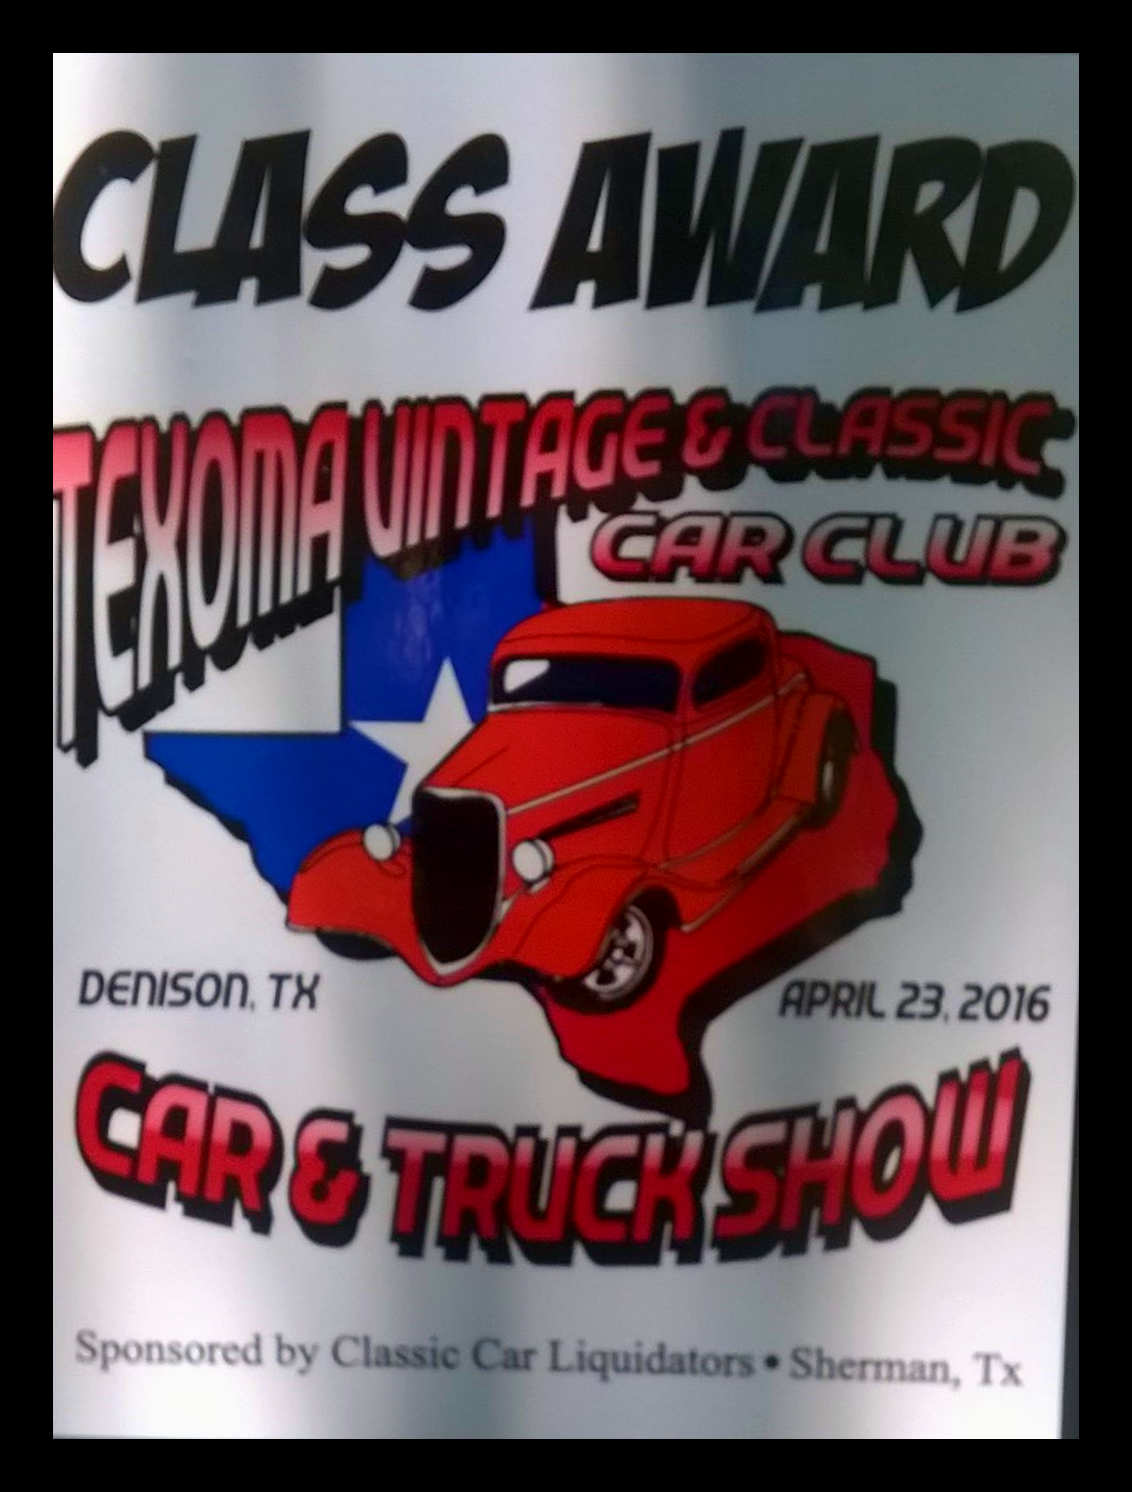 Texoma Vintage & Classic Car Club Award